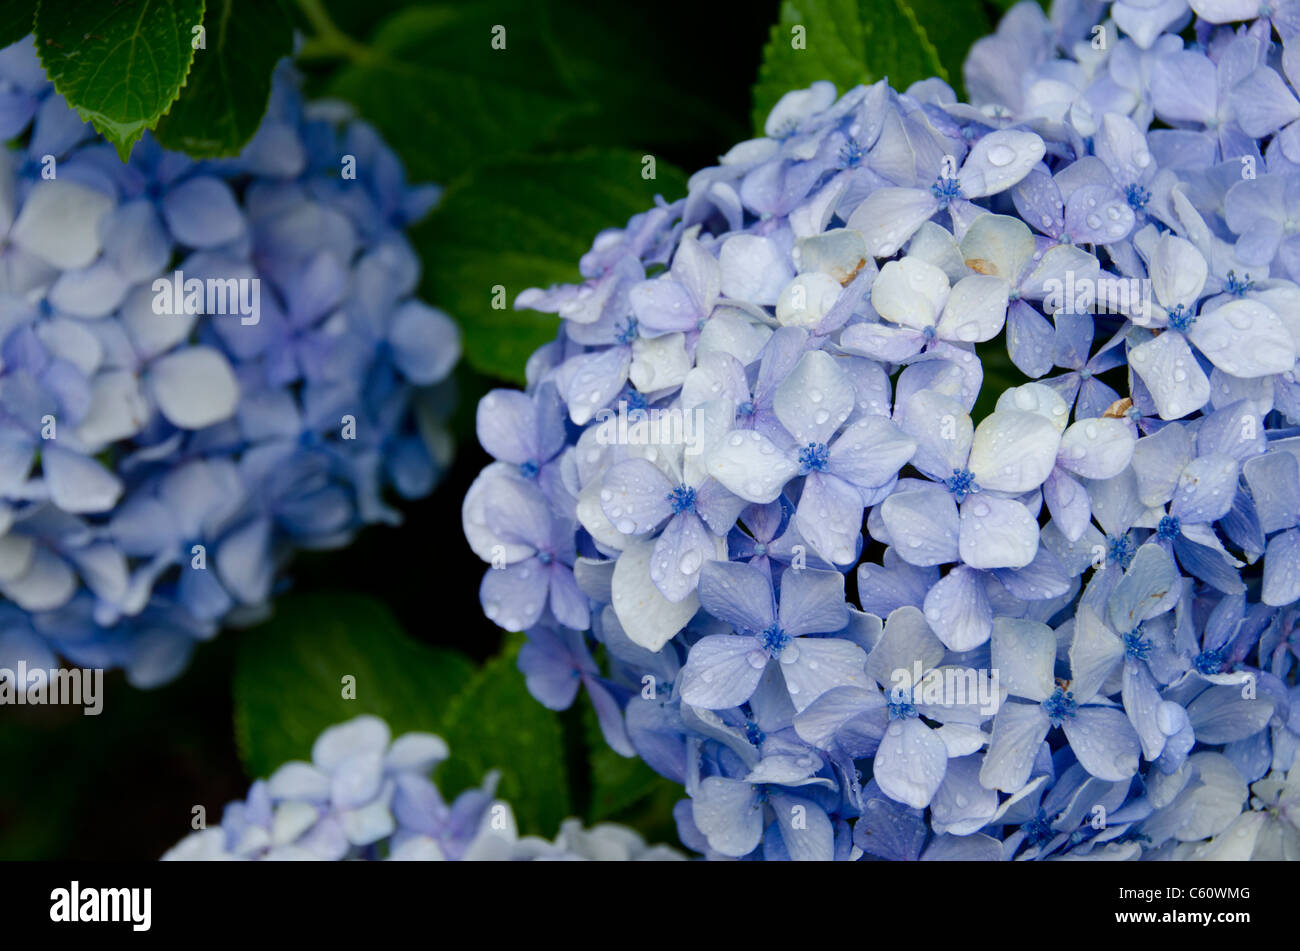 Massachusetts, Martha's Vineyard, Oak Bluffs. Blue hydrangeas wet with raindrops. - Stock Image